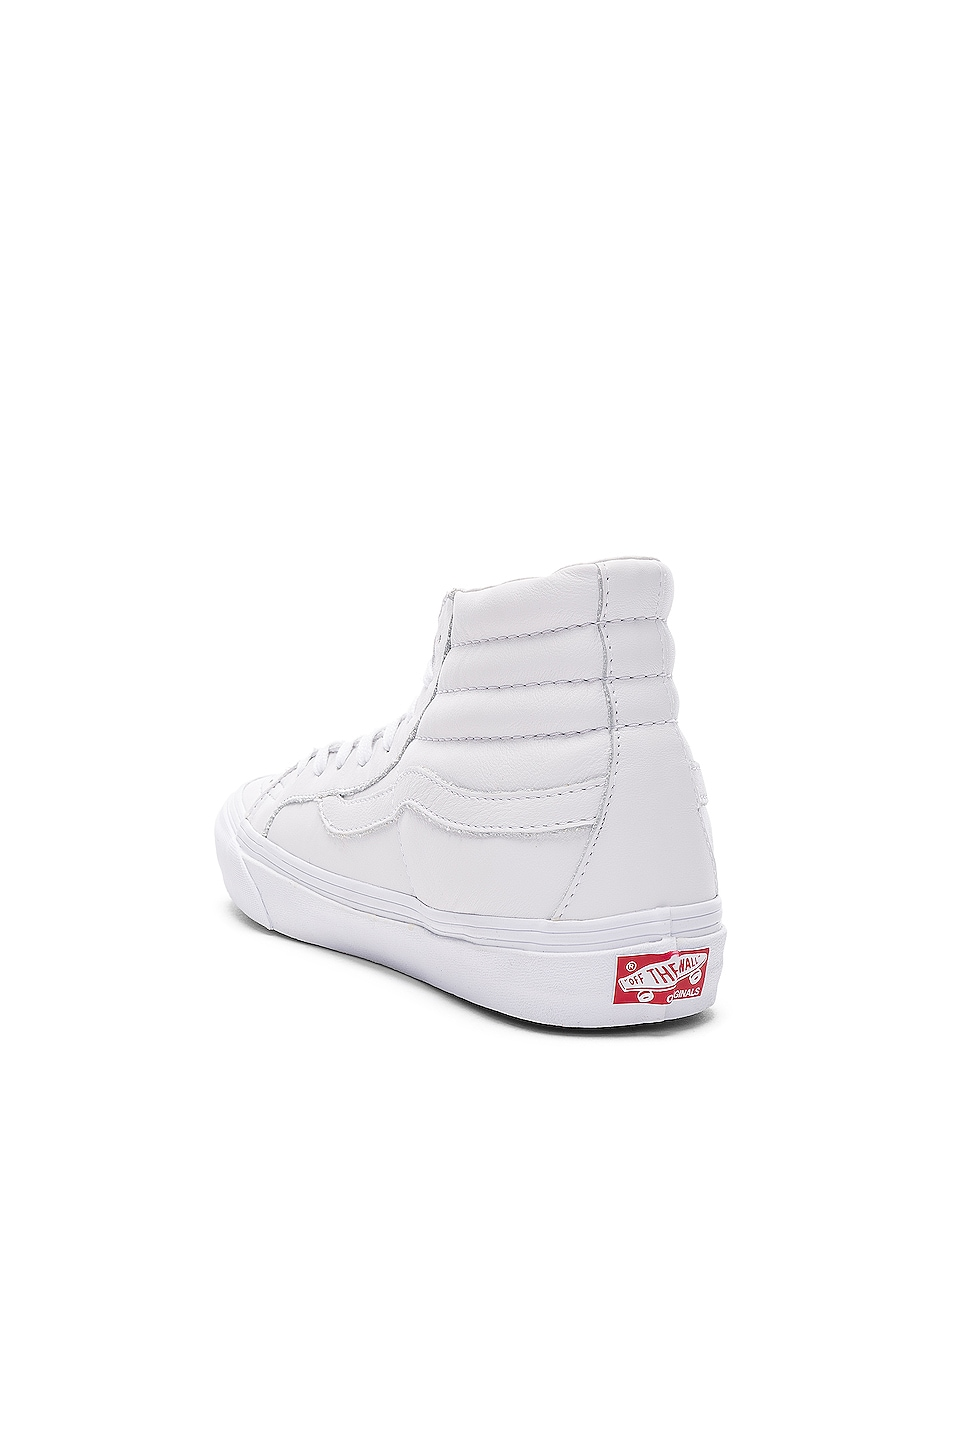 Image 3 of Vans Vault Leather OG SK8-HI LX in White